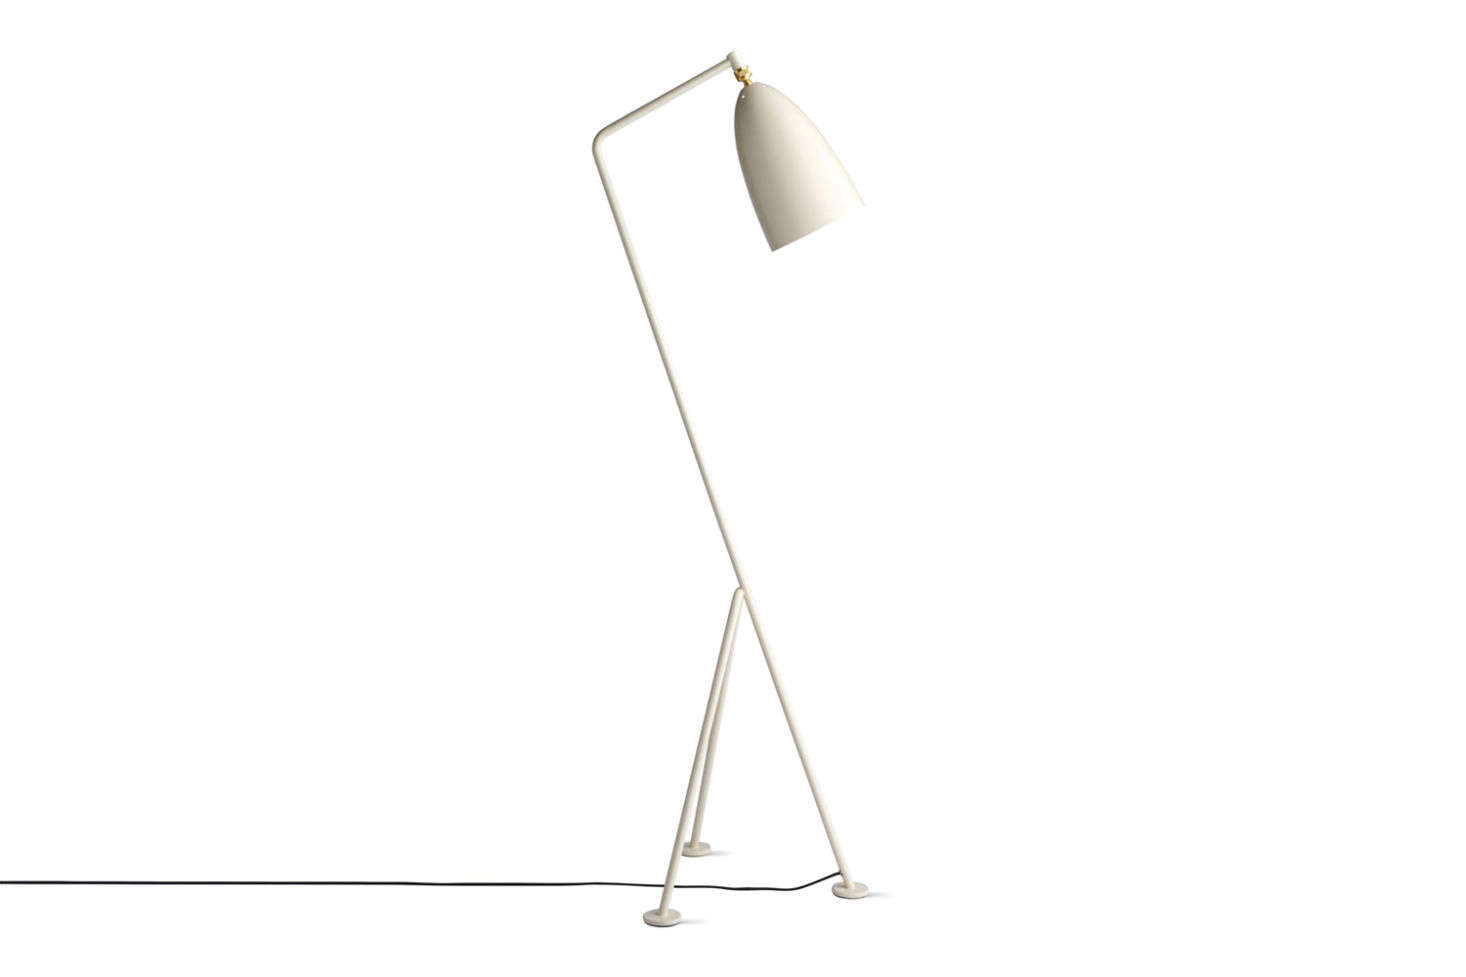 The Grasshopper Floor Lamp by Swedish architect Greta Grossman for Gubi comes in nine colors; $1,030 at Design Within Reach.